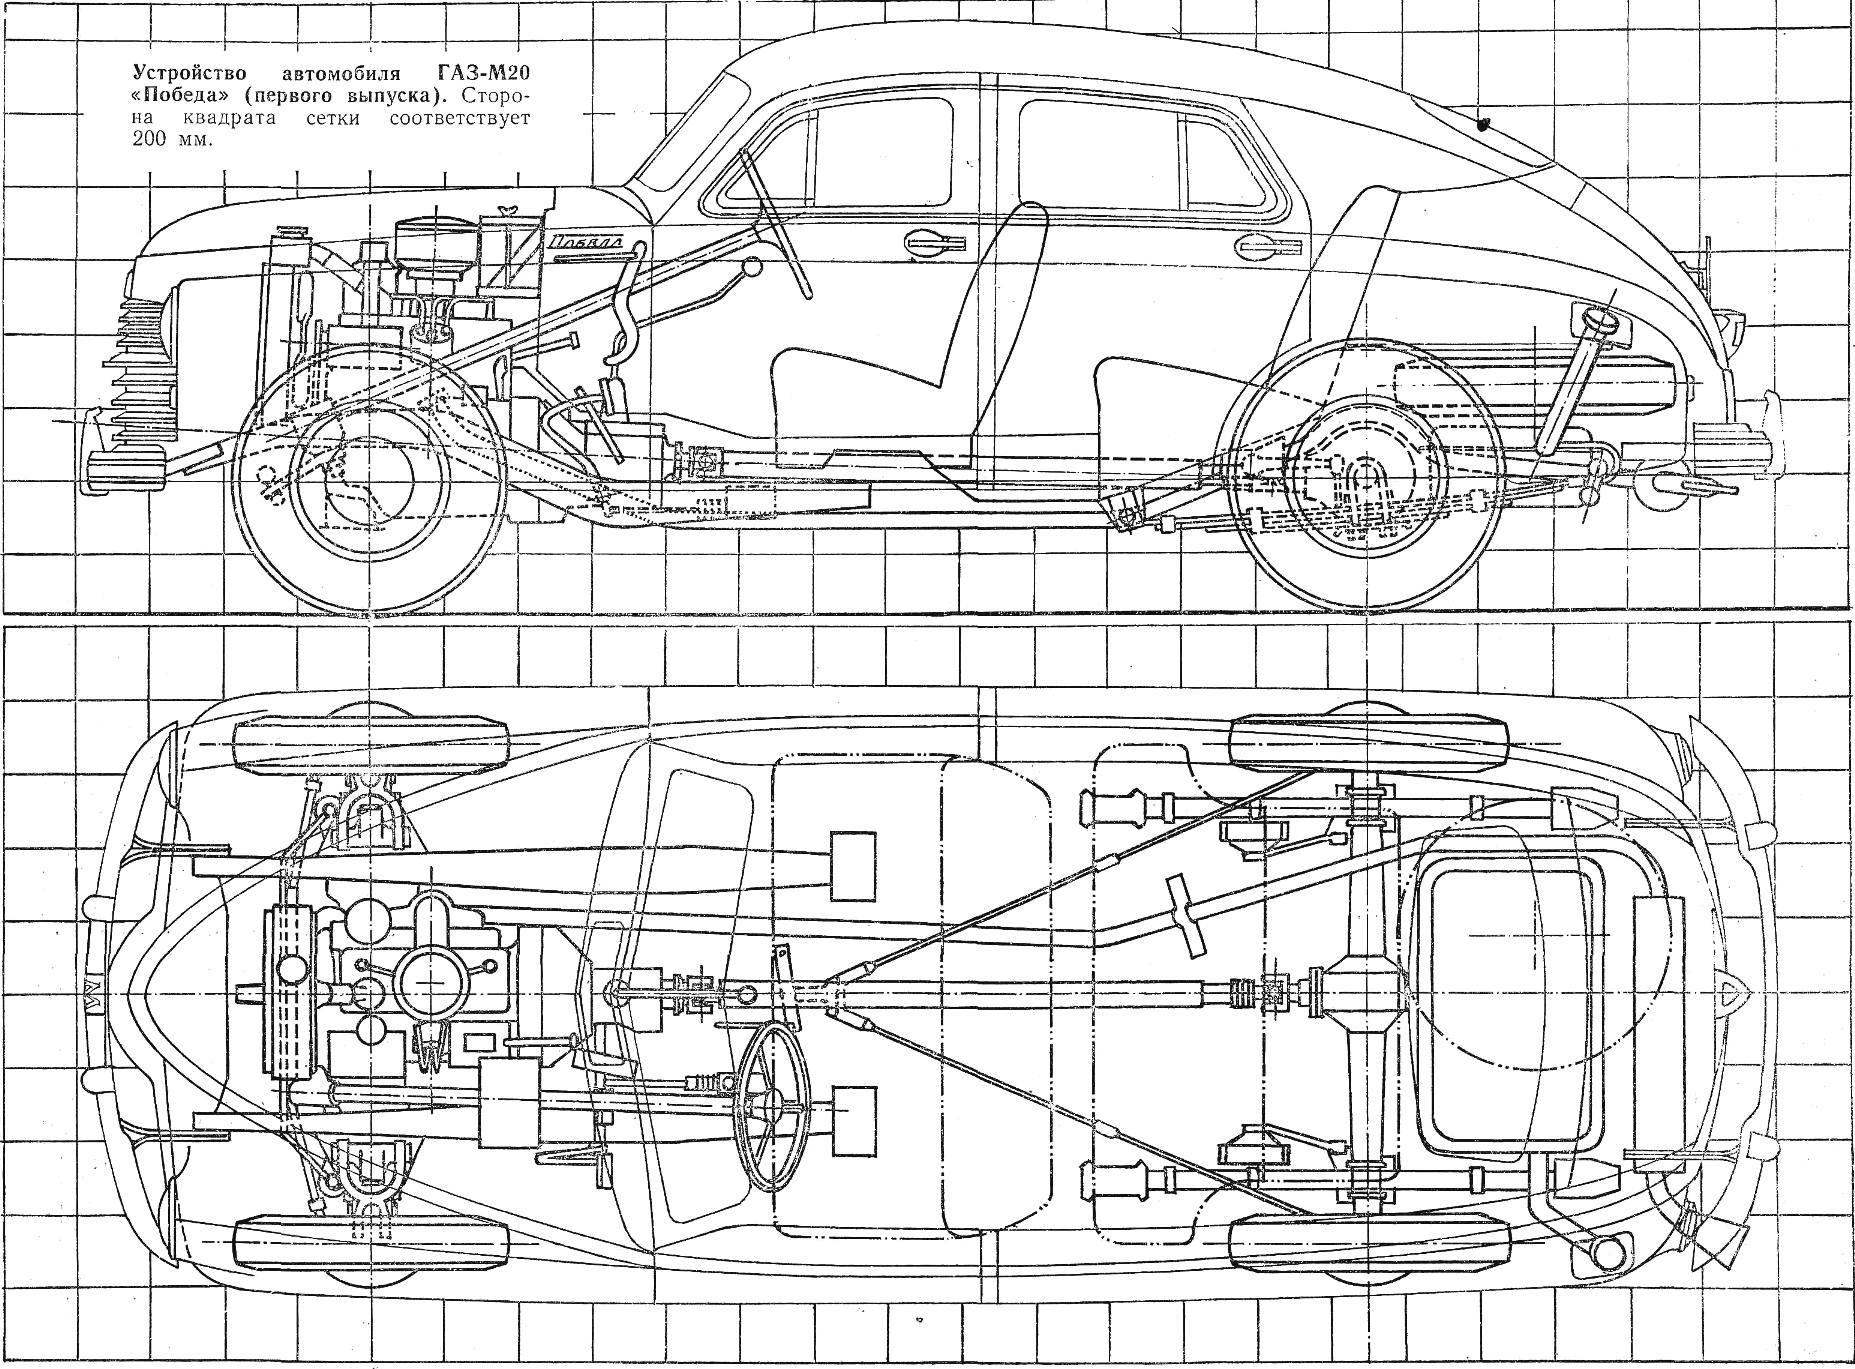 The device of the GAZ-M20